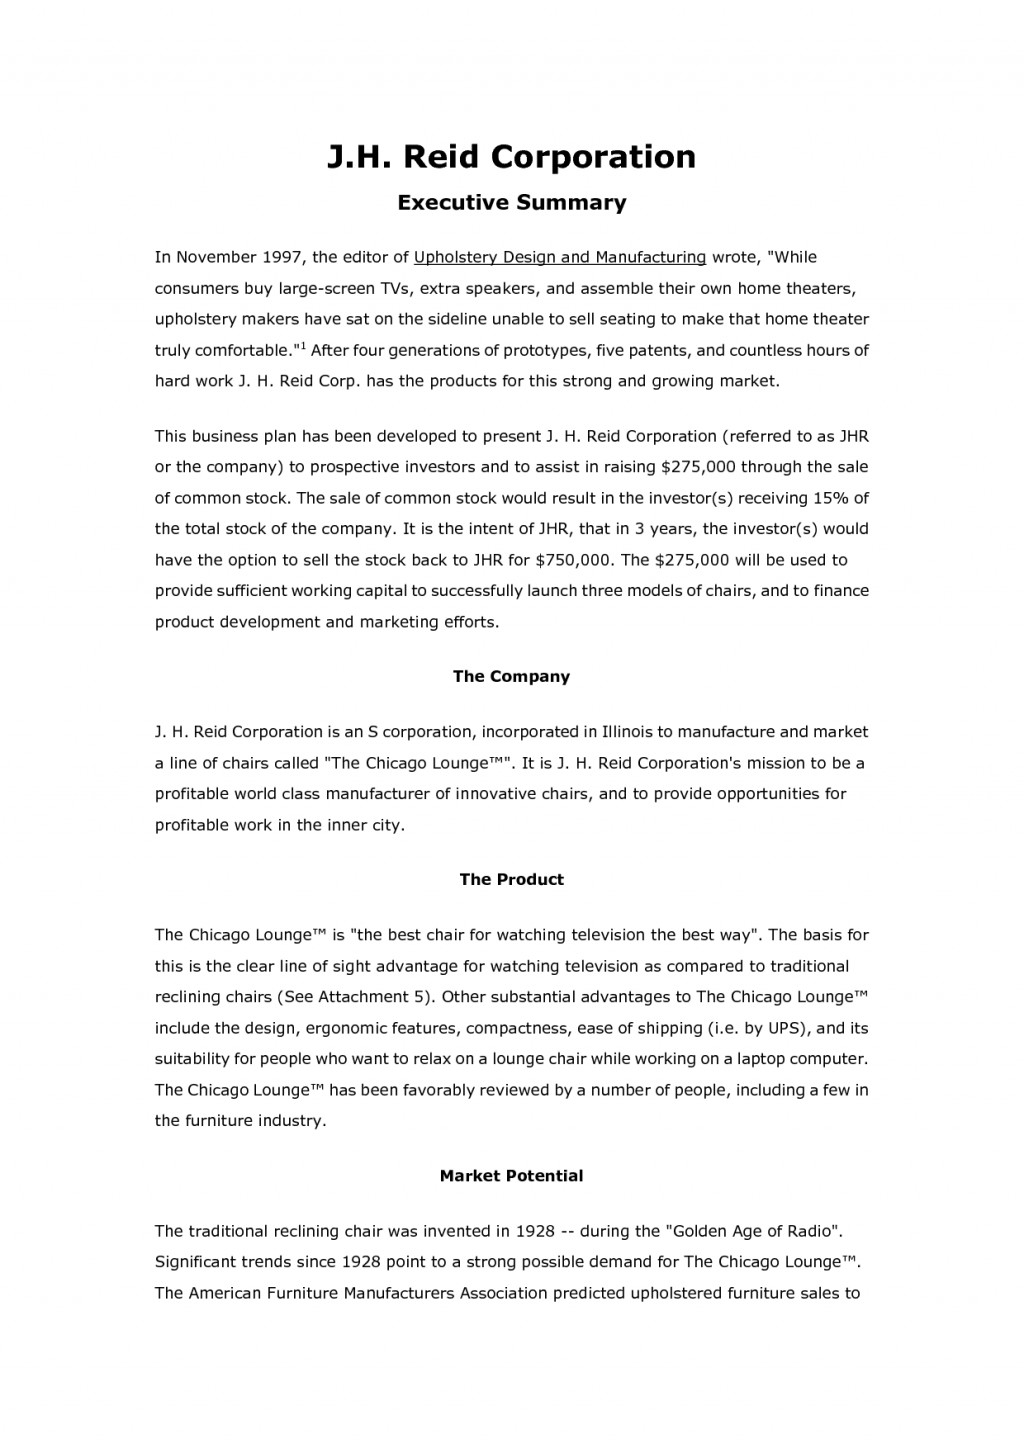 011 Ethics Essay Example Business Plan Formidable Code Of Sample Outline Large